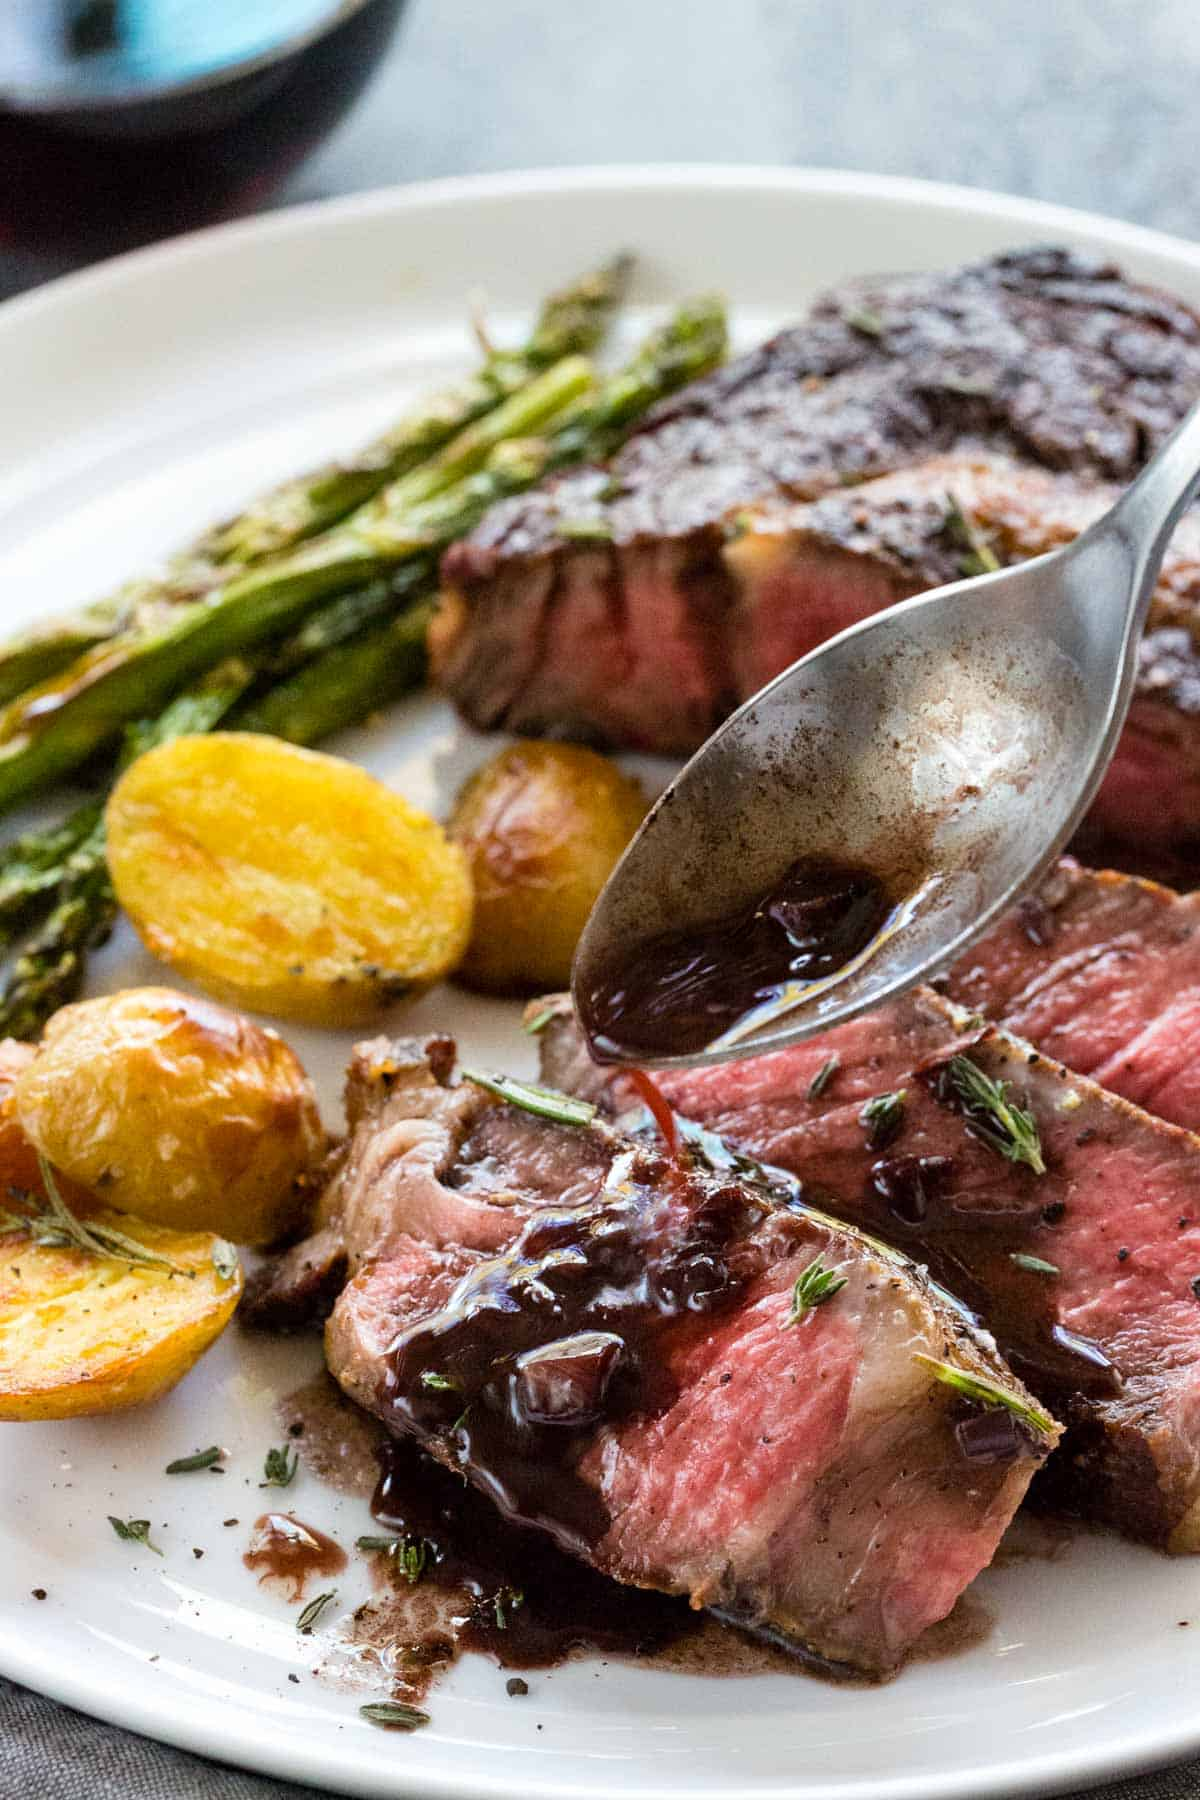 Spoon pouring red wine reduction sauce over slices of ribeye steak